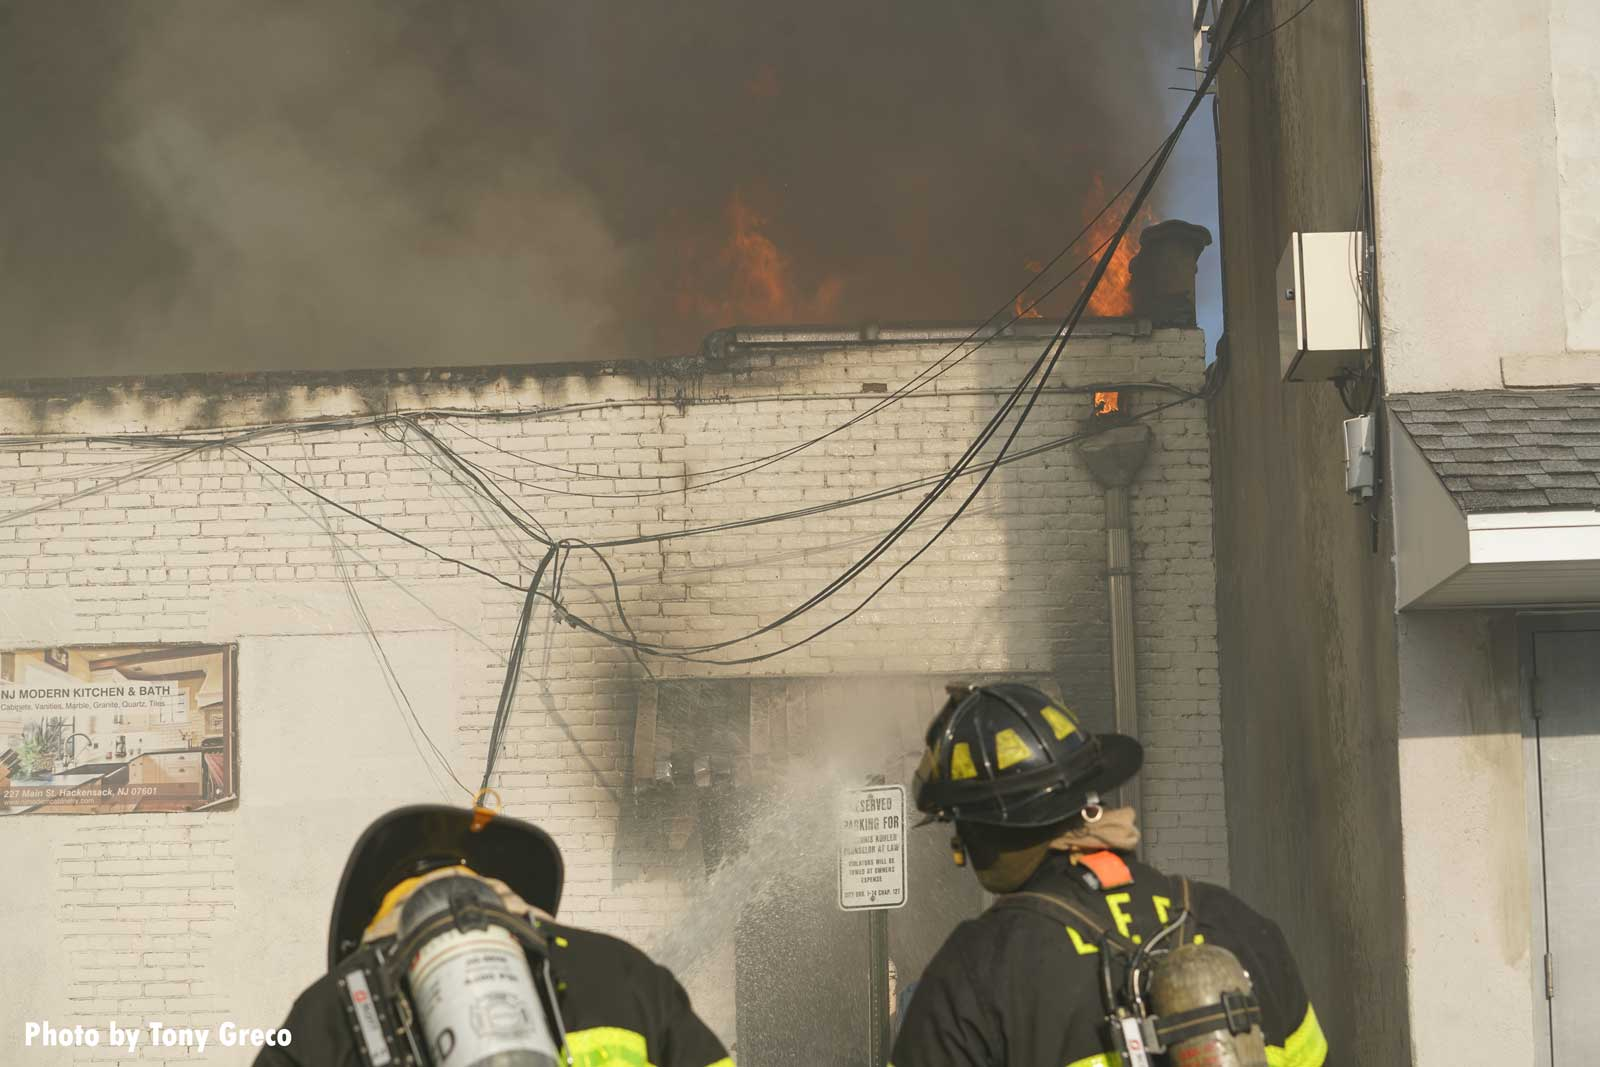 Firefighters confront flames shooting through the roof of the building